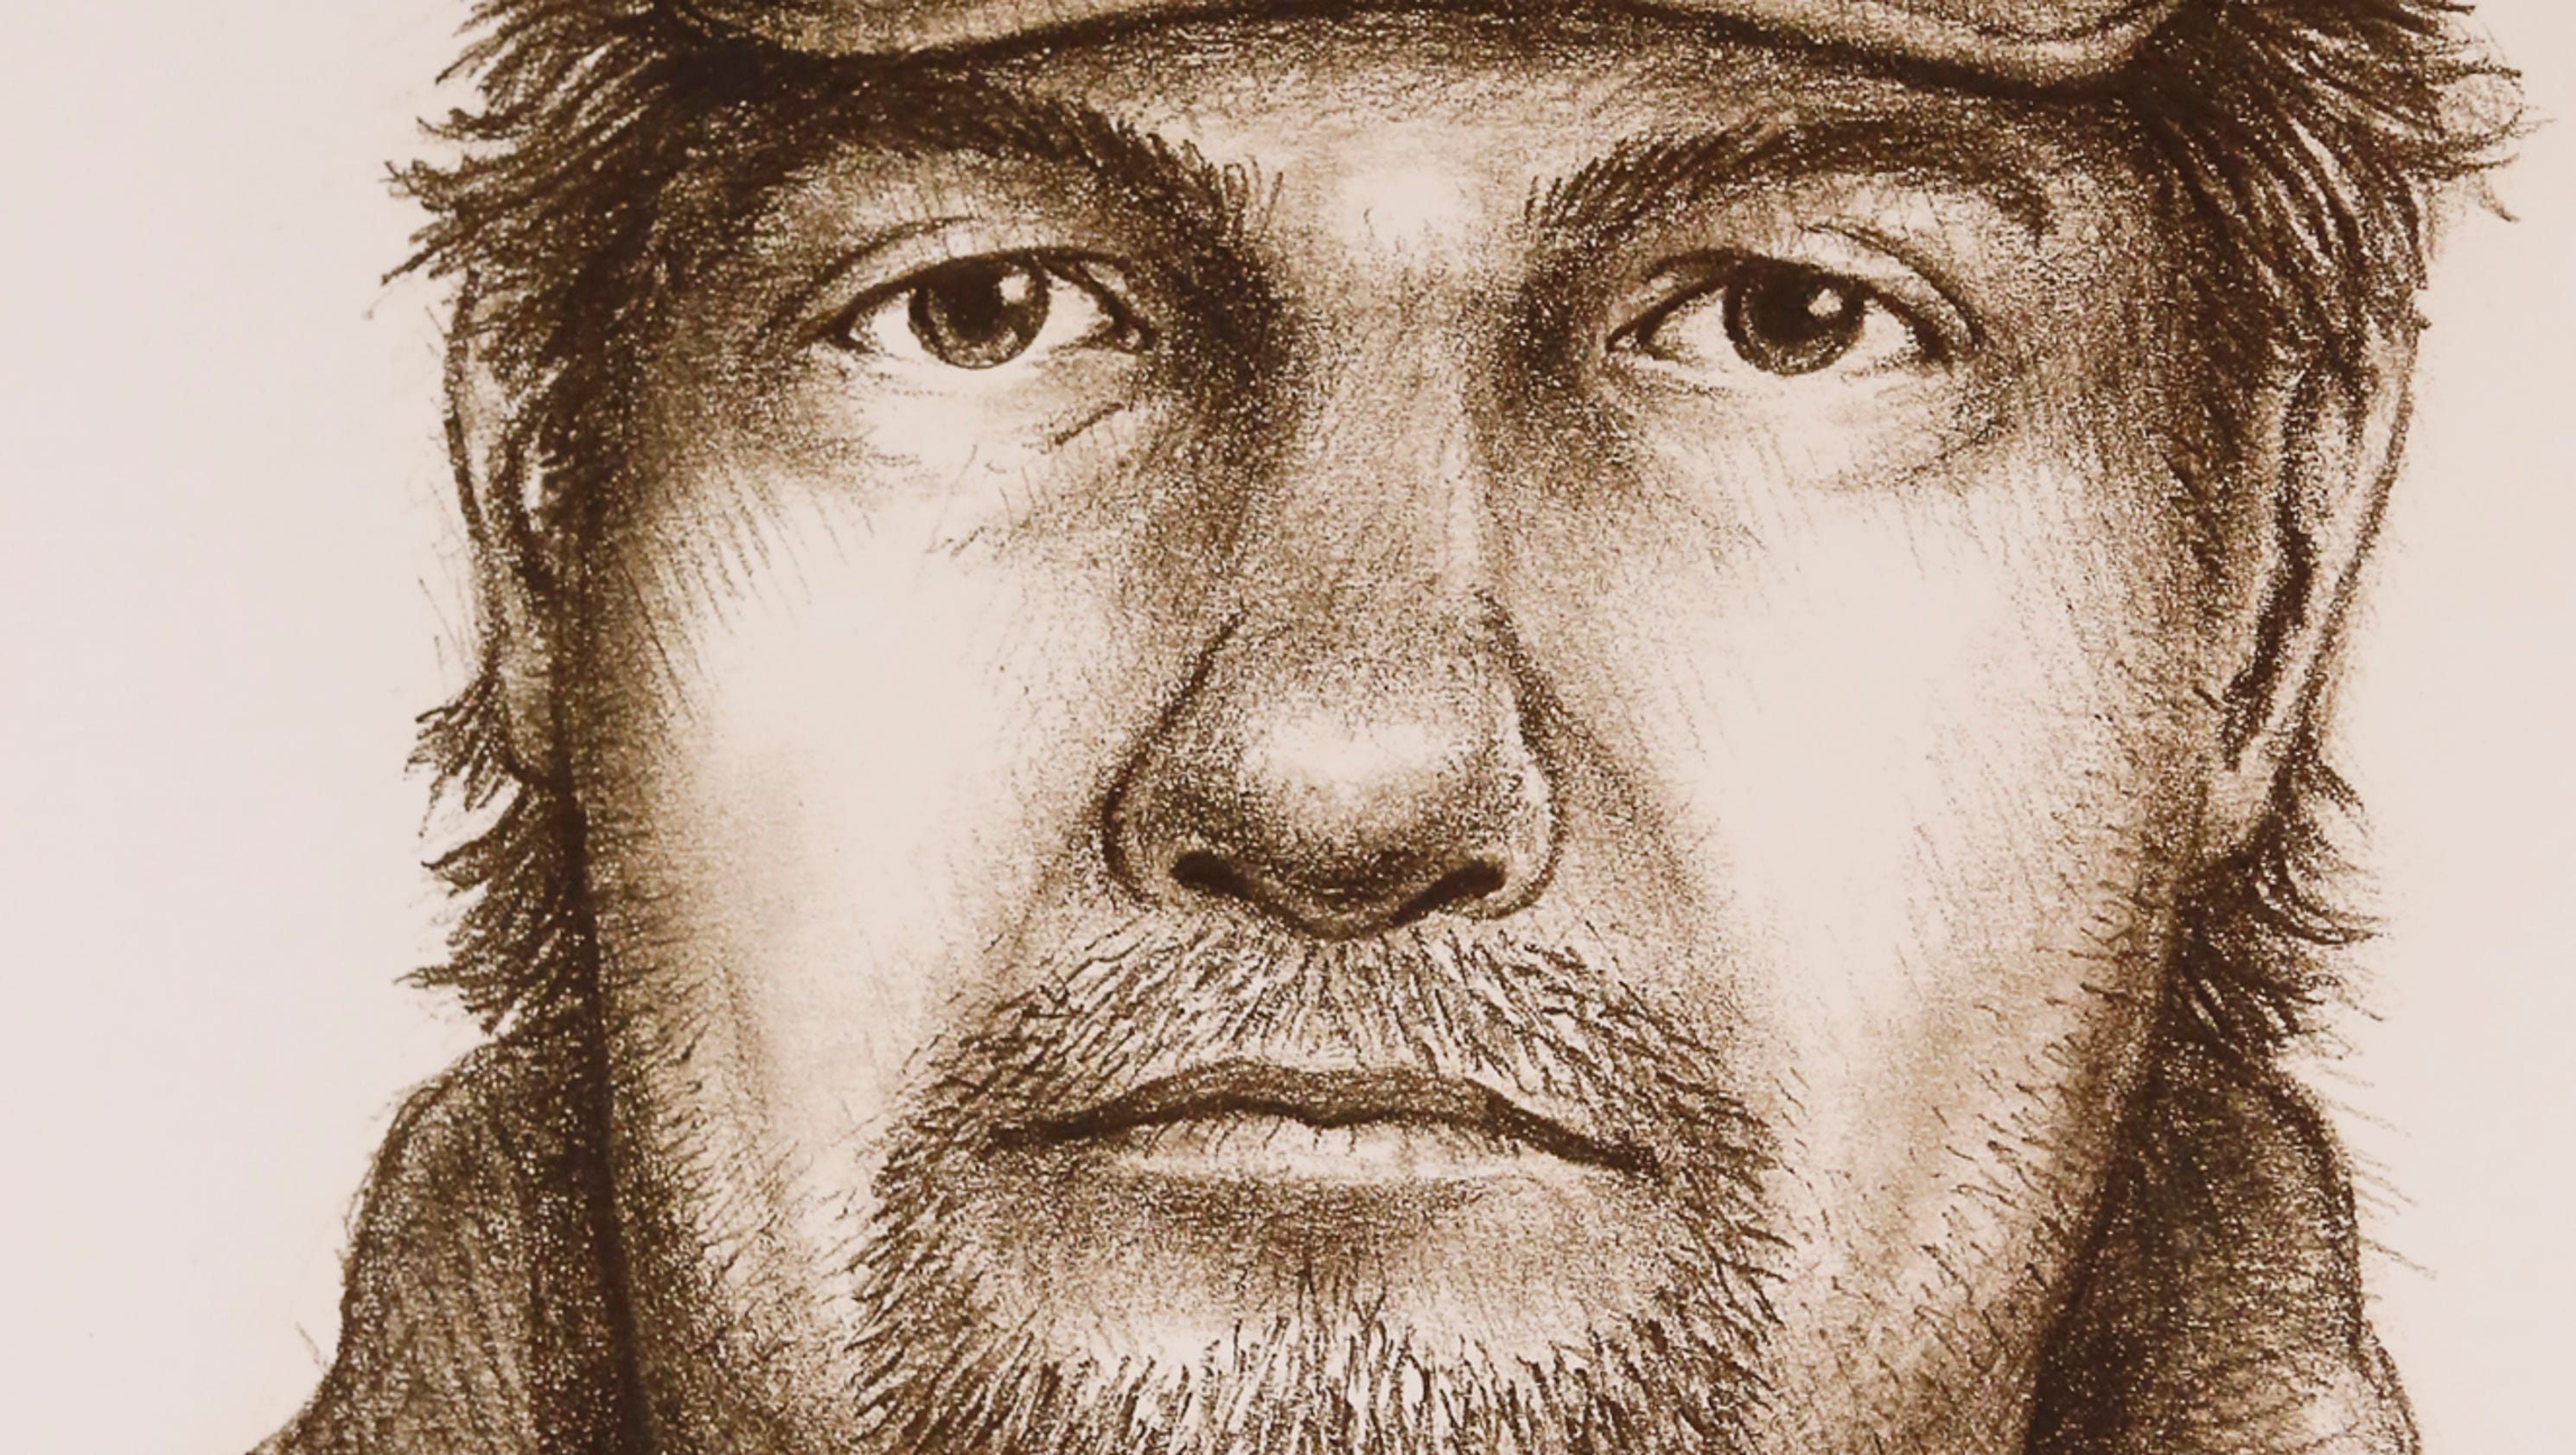 ISP to users Stop armchair sleuthing on Delphi murders